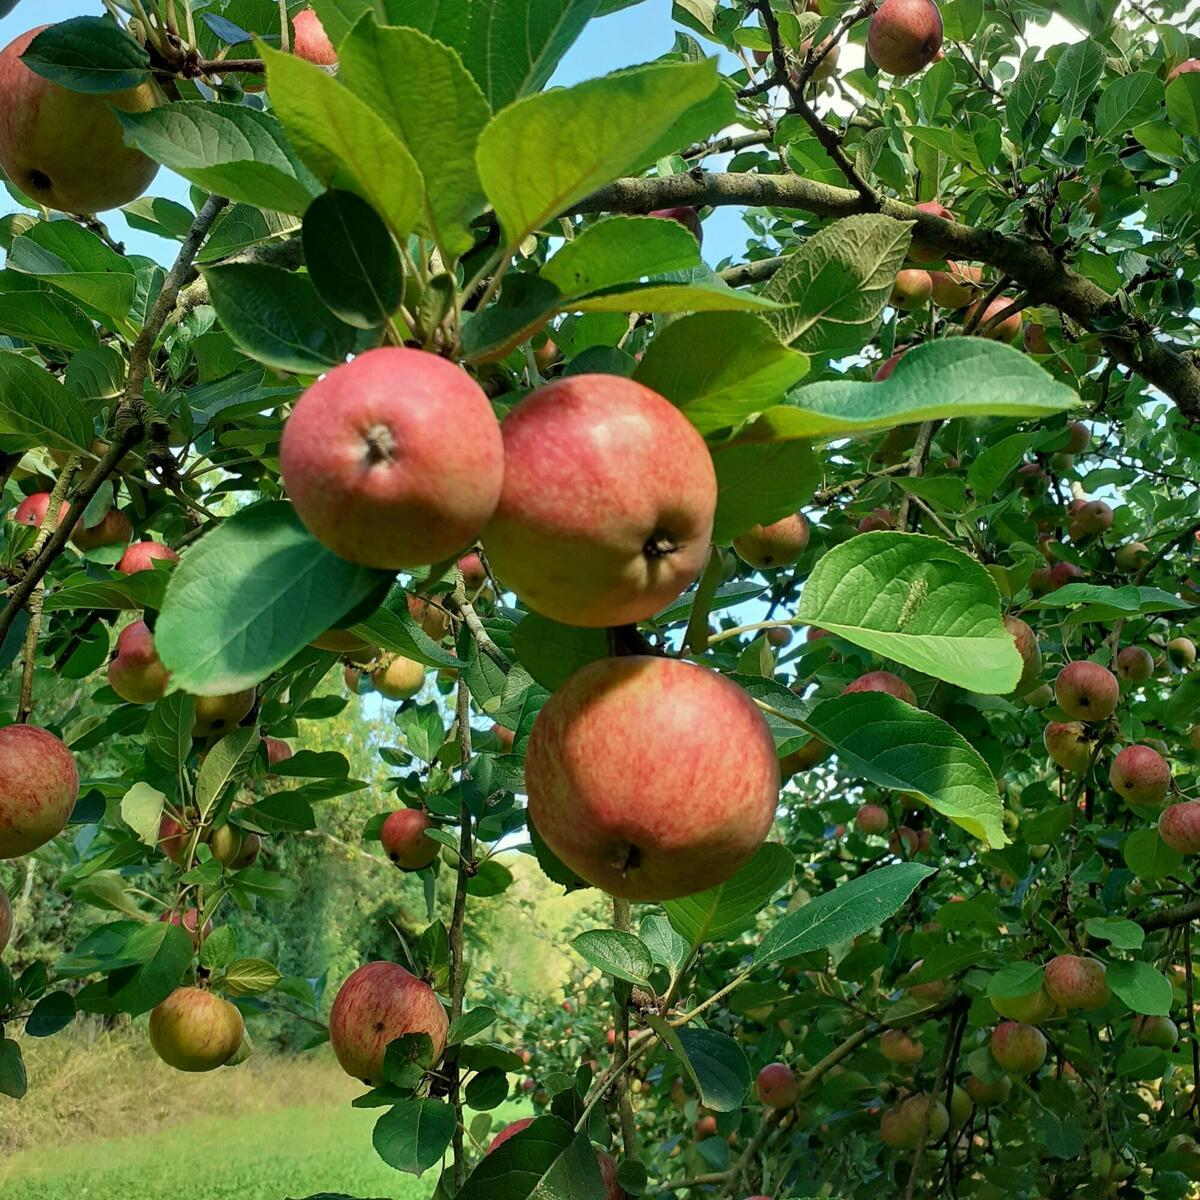 Cider apples ripening in the sun